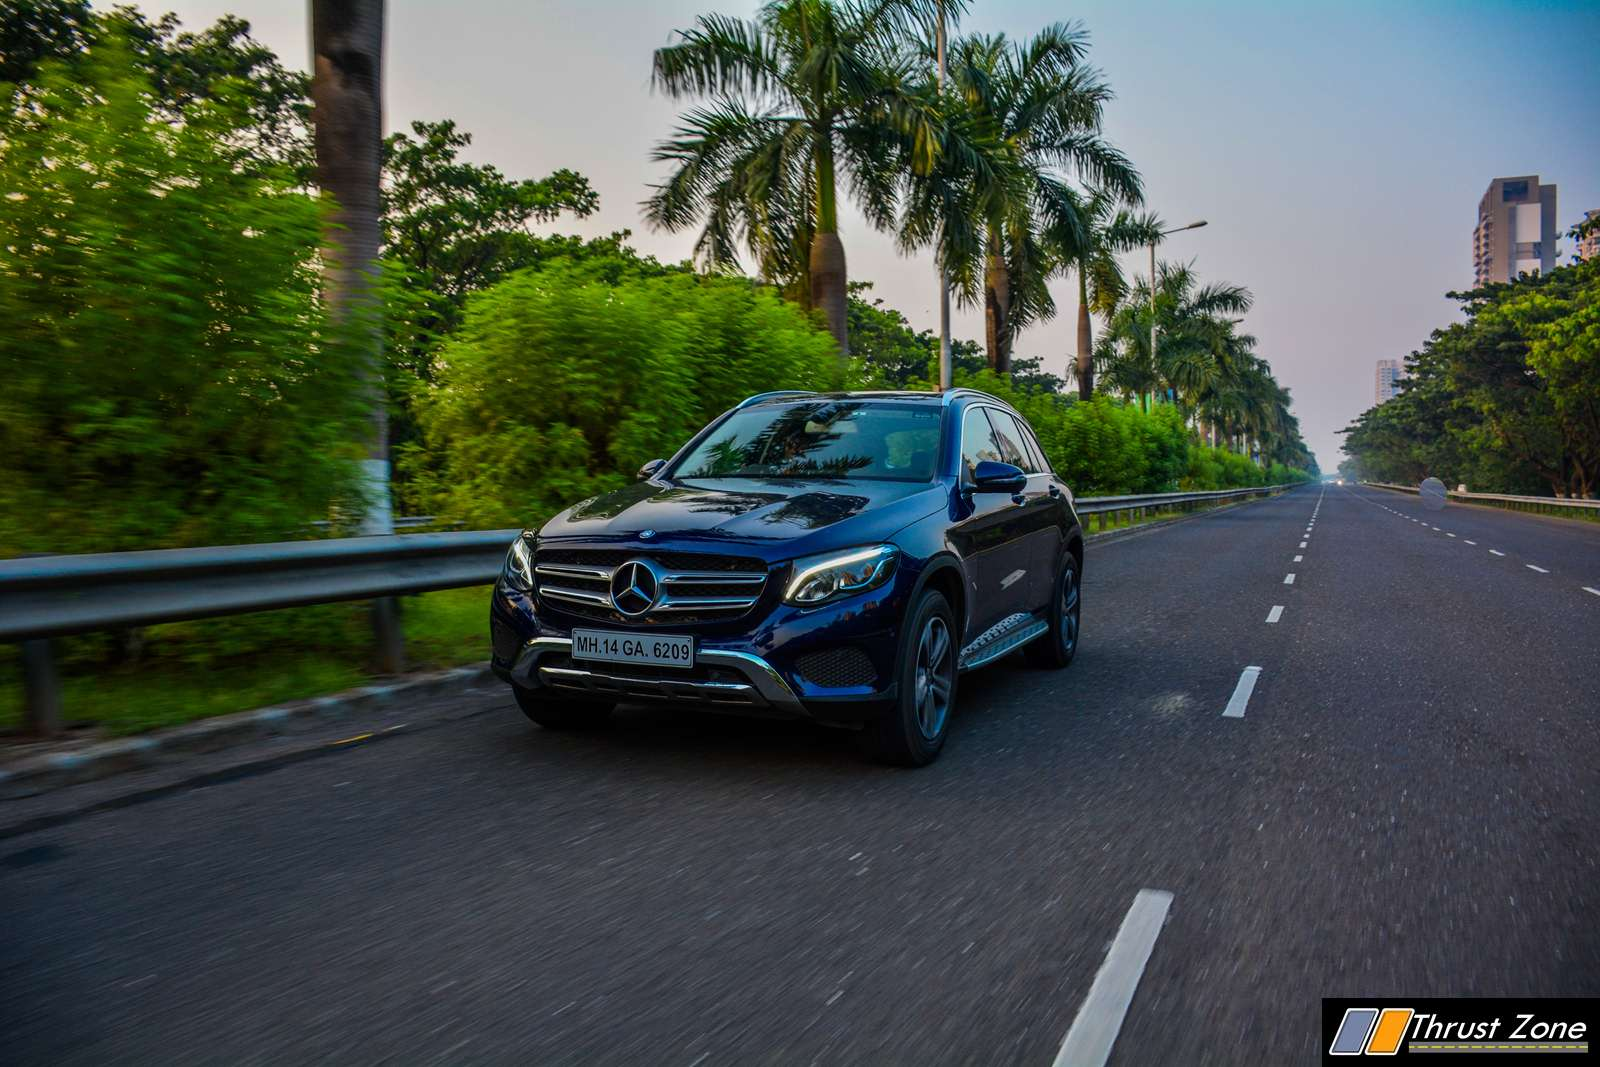 https://www.thrustzone.com/wp-content/uploads/2017/11/Mercedes-GLC-300-SUV-India-Review-36.jpg